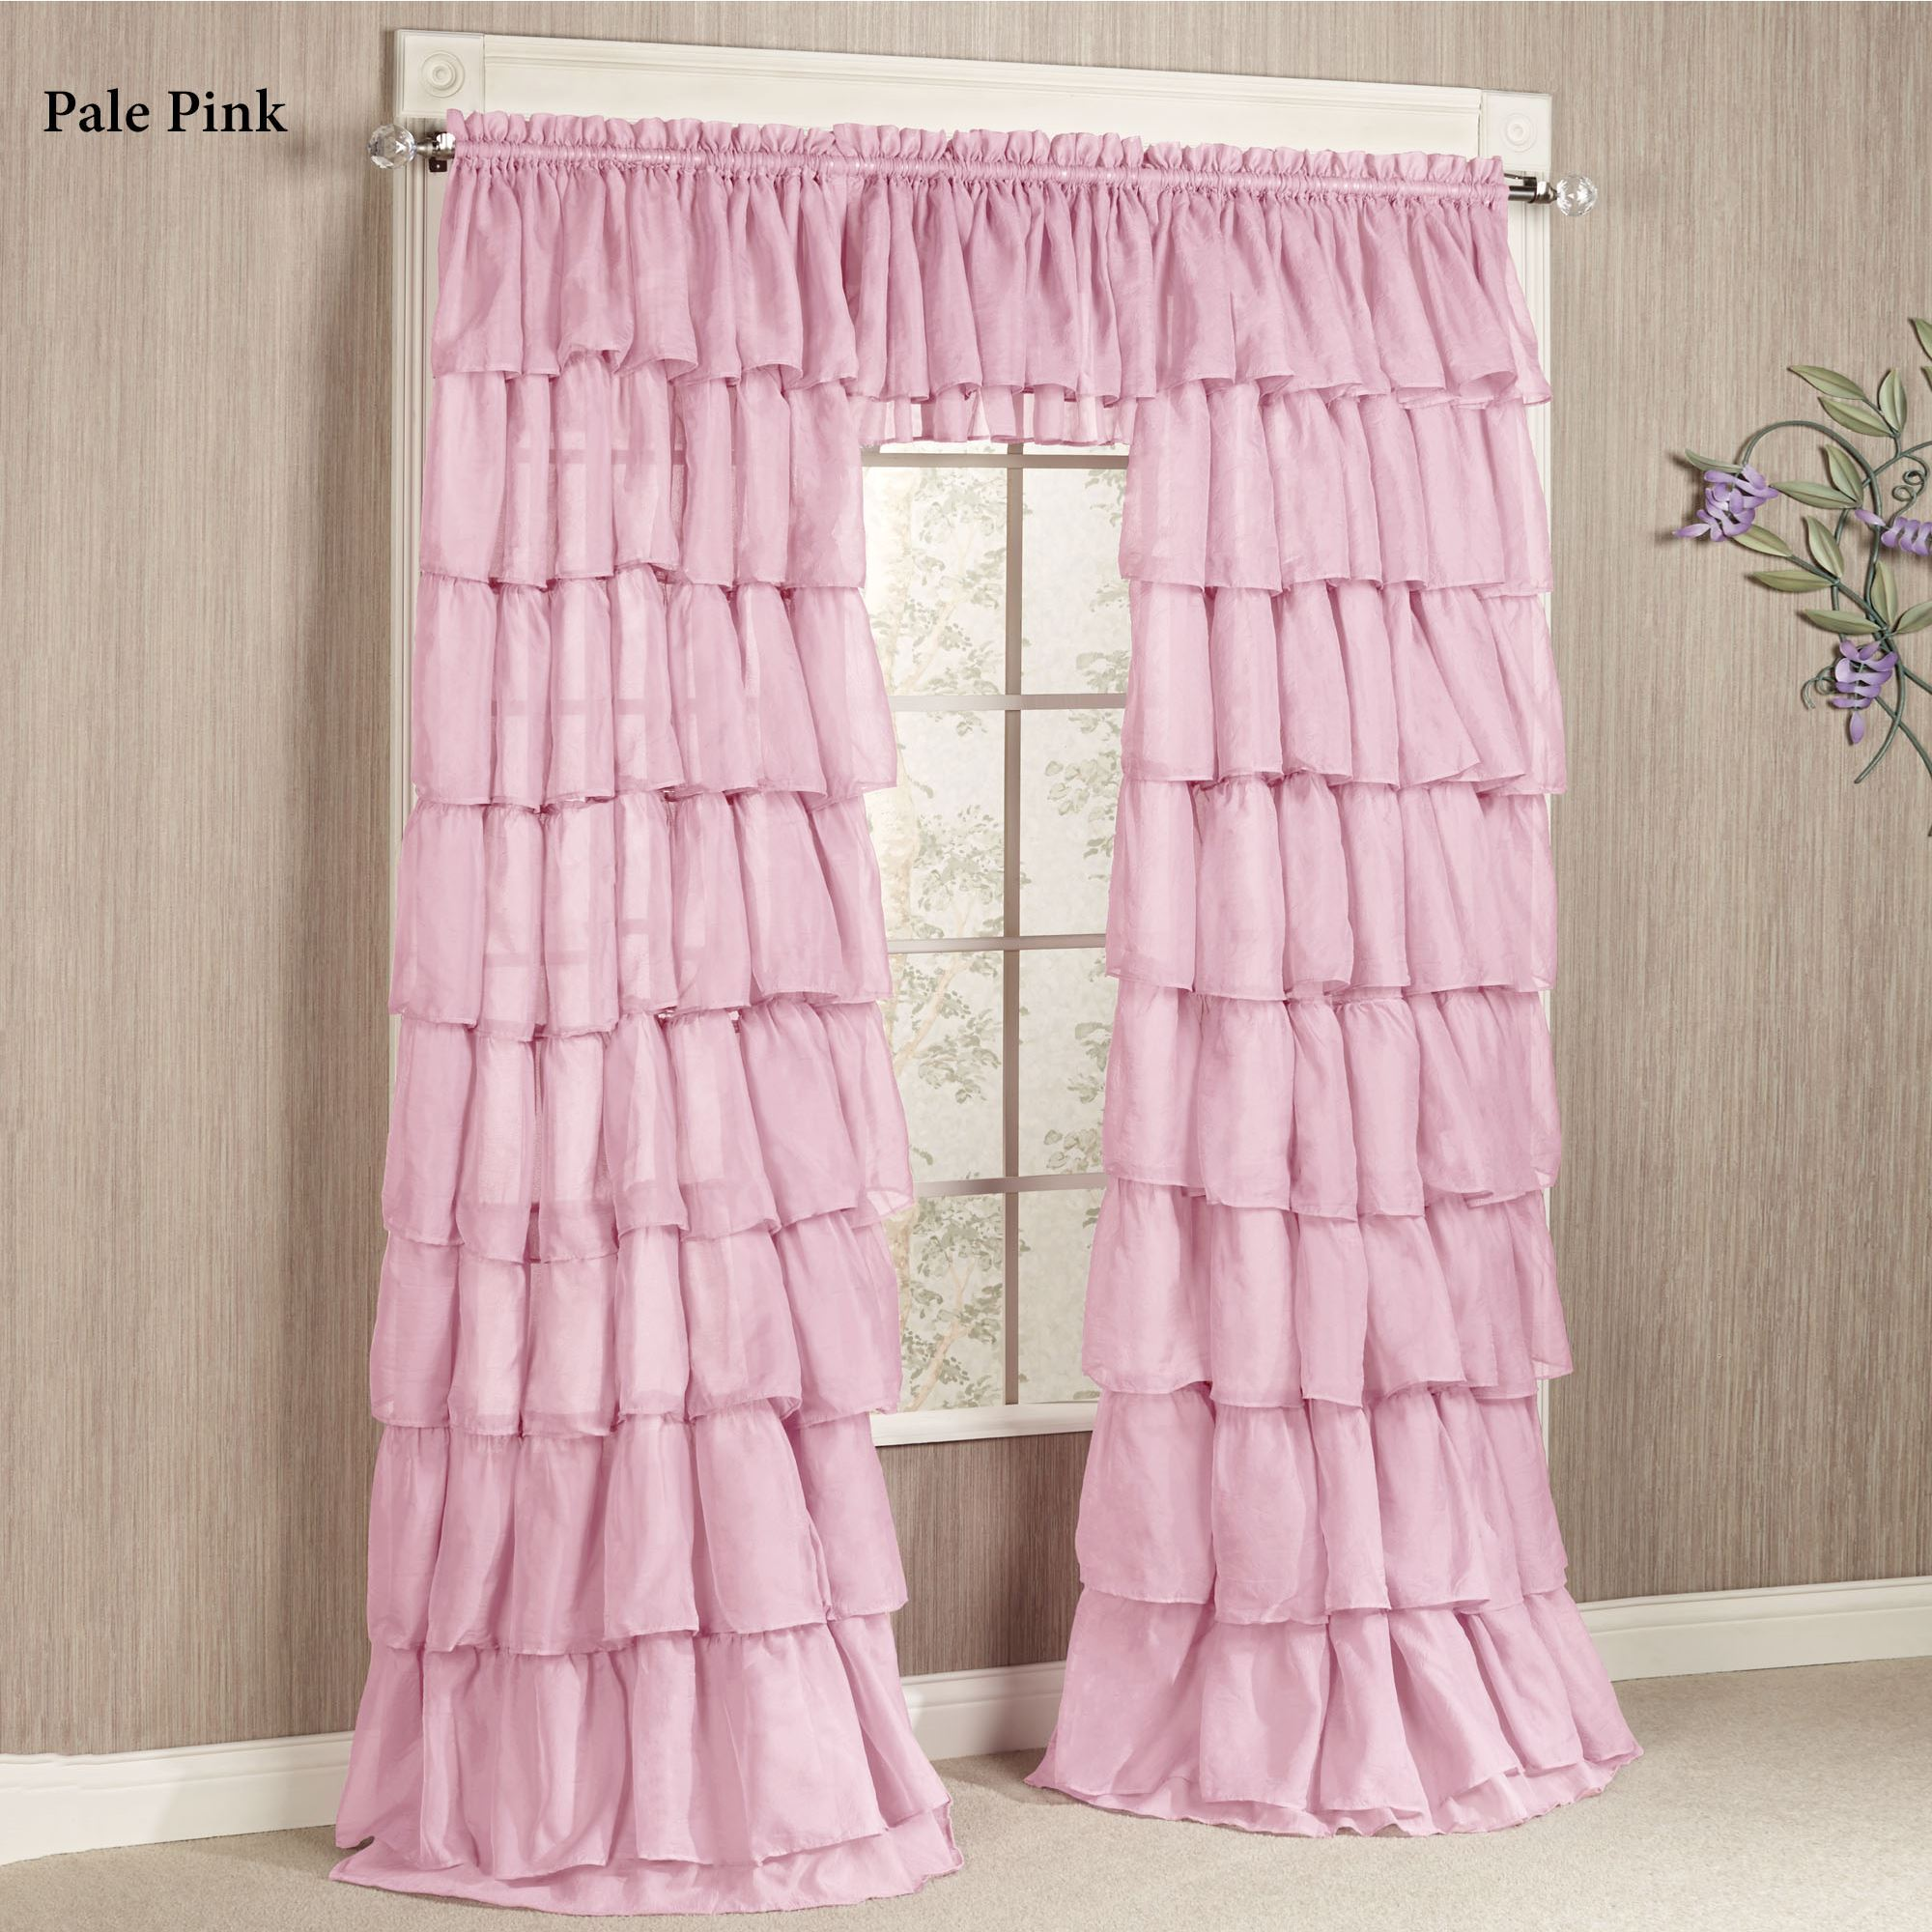 Ruffle Curtain Panel Gypsy Sheer Voile Ruffled Window Treatment